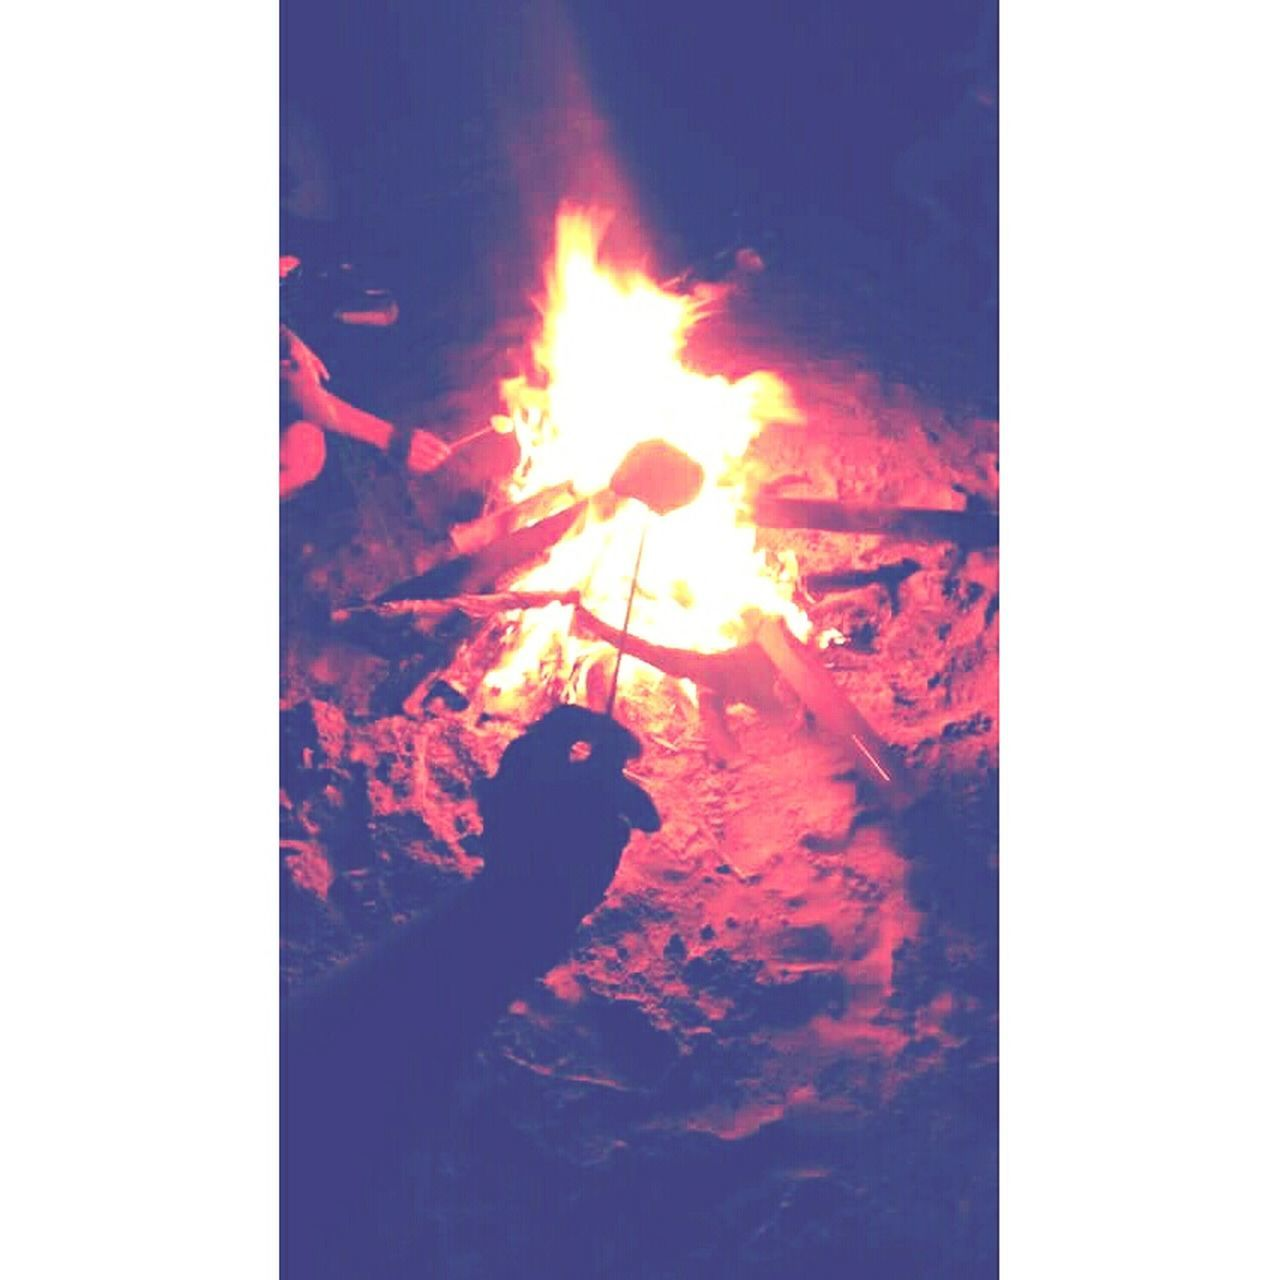 flame, burning, danger, heat - temperature, outdoors, night, one person, real people, bonfire, men, nature, one man only, close-up, people